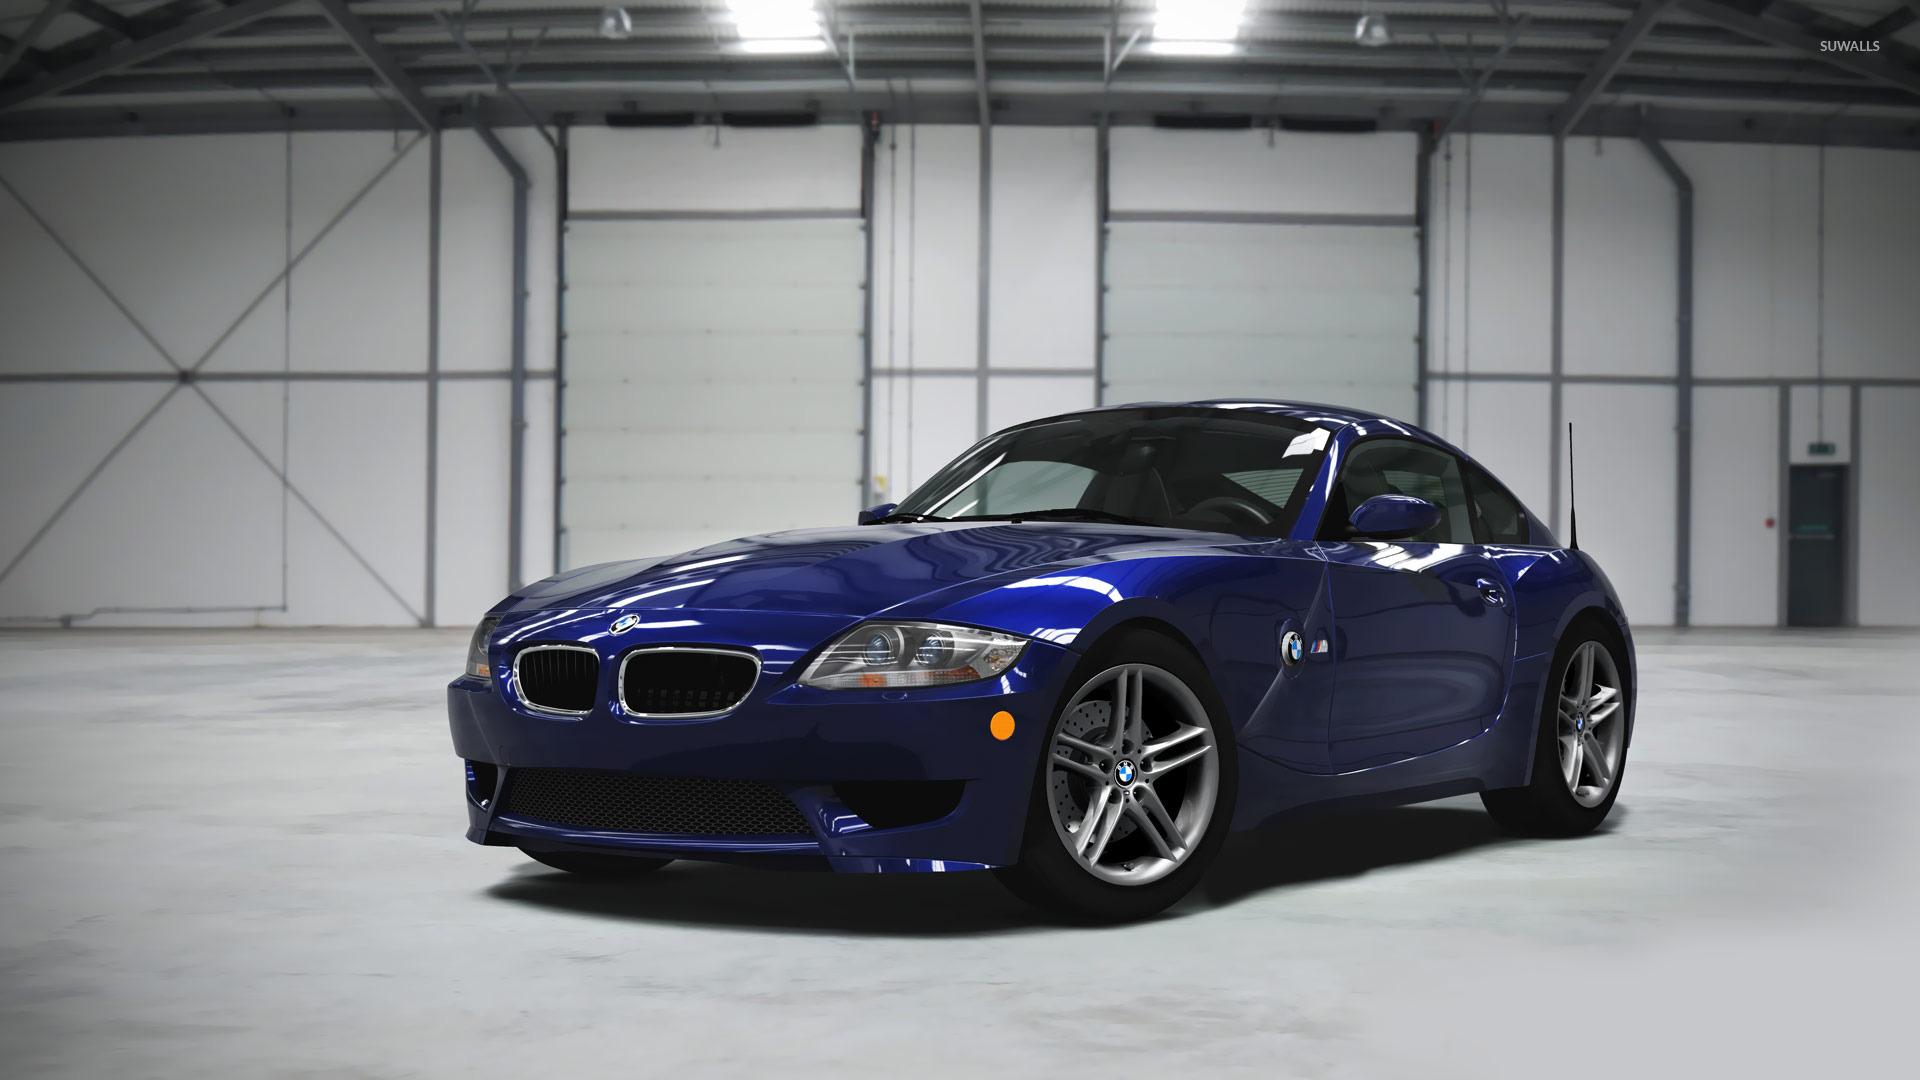 Bmw Z4 M Coupe 3 Wallpaper Car Wallpapers 19252